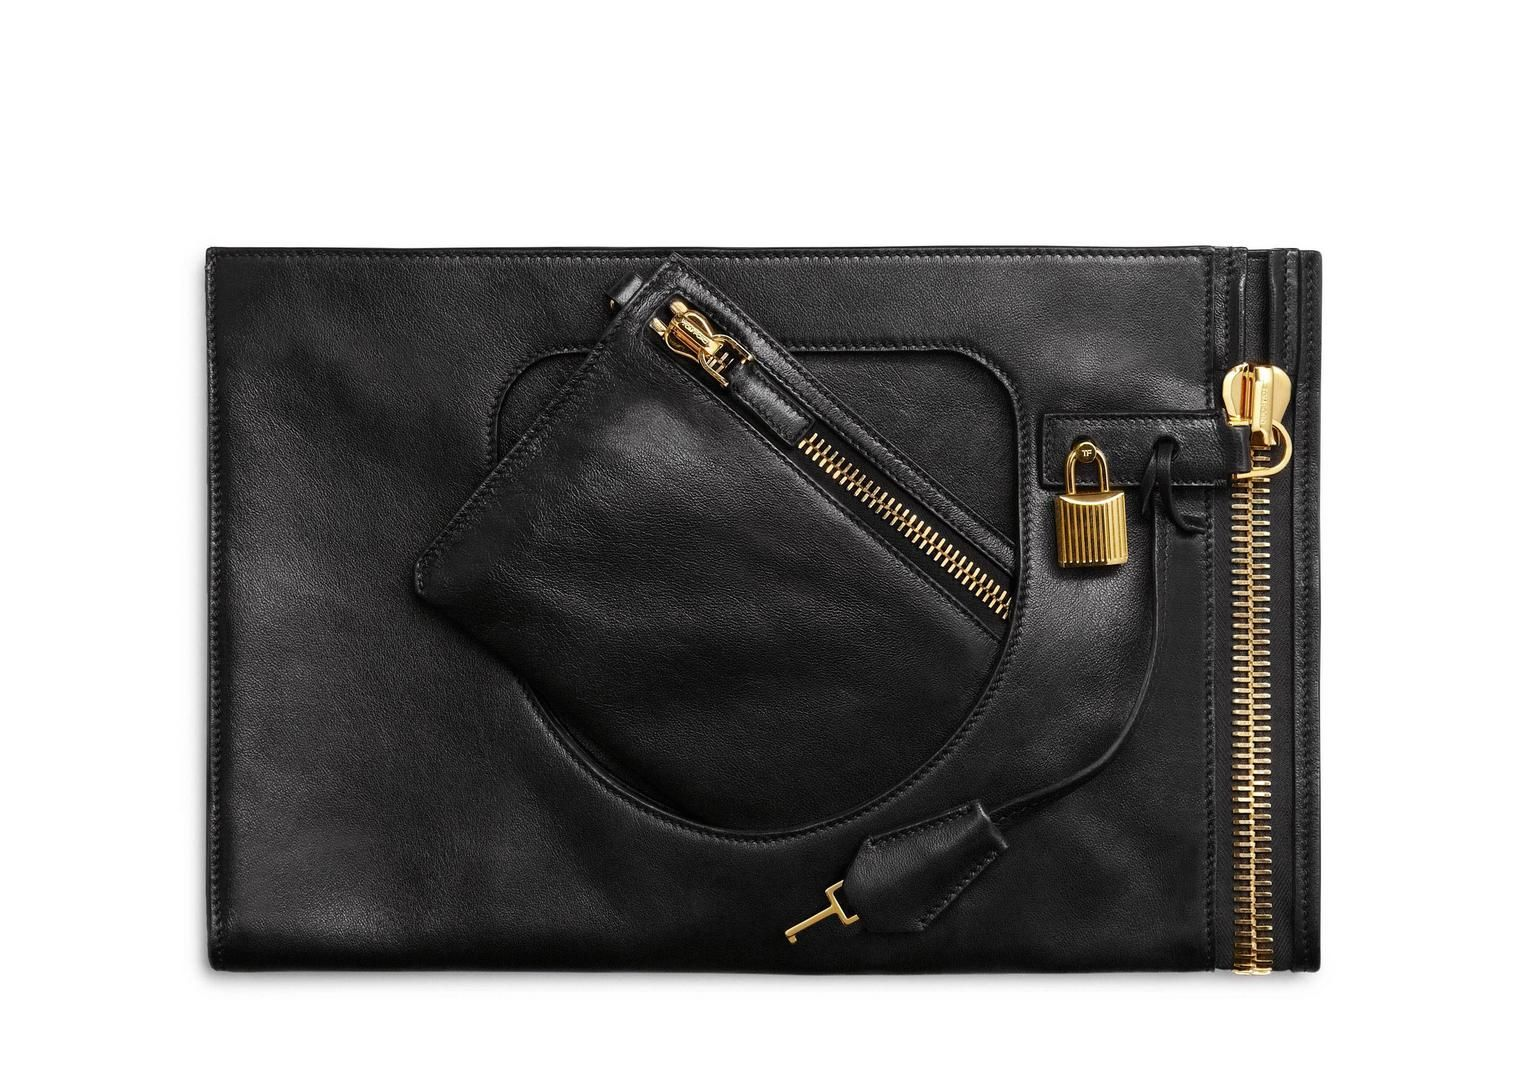 Alix Small Leather Bag